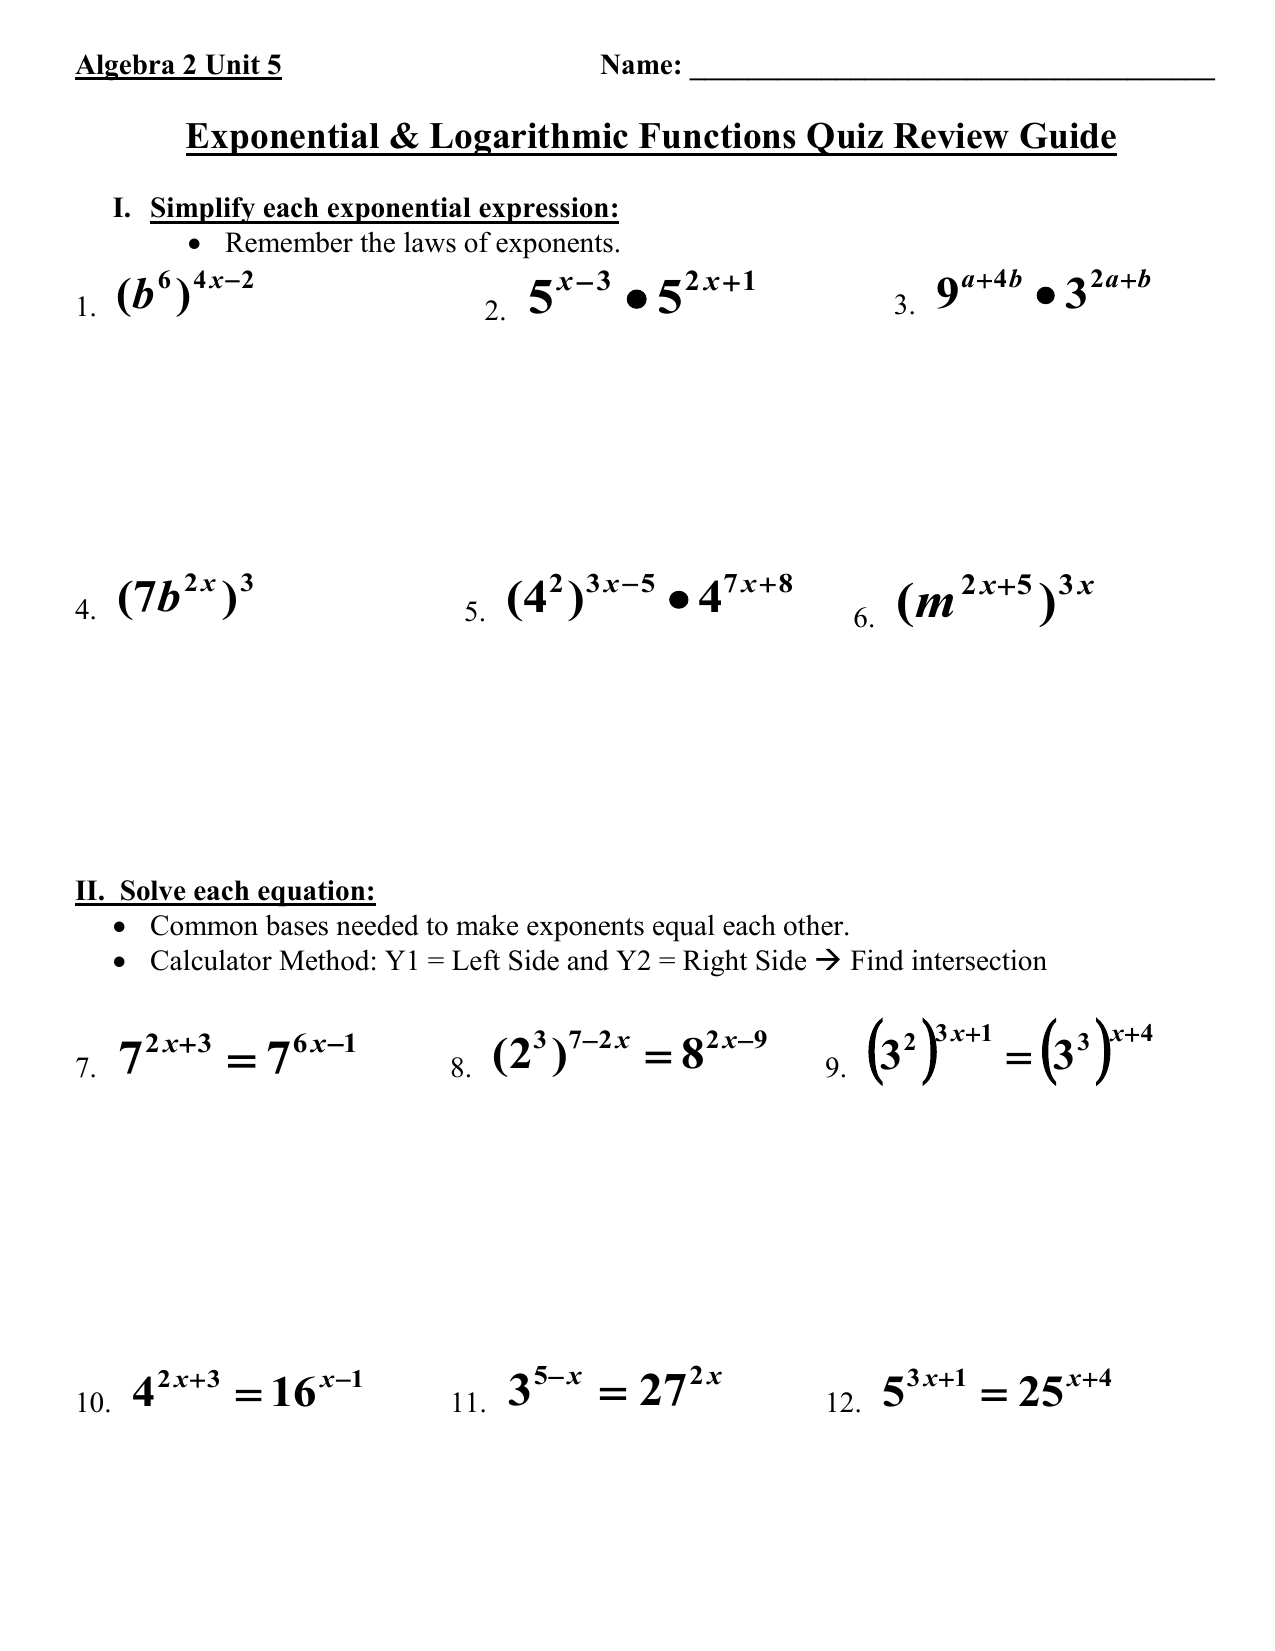 Algebra 2 Exponential Functions Worksheet